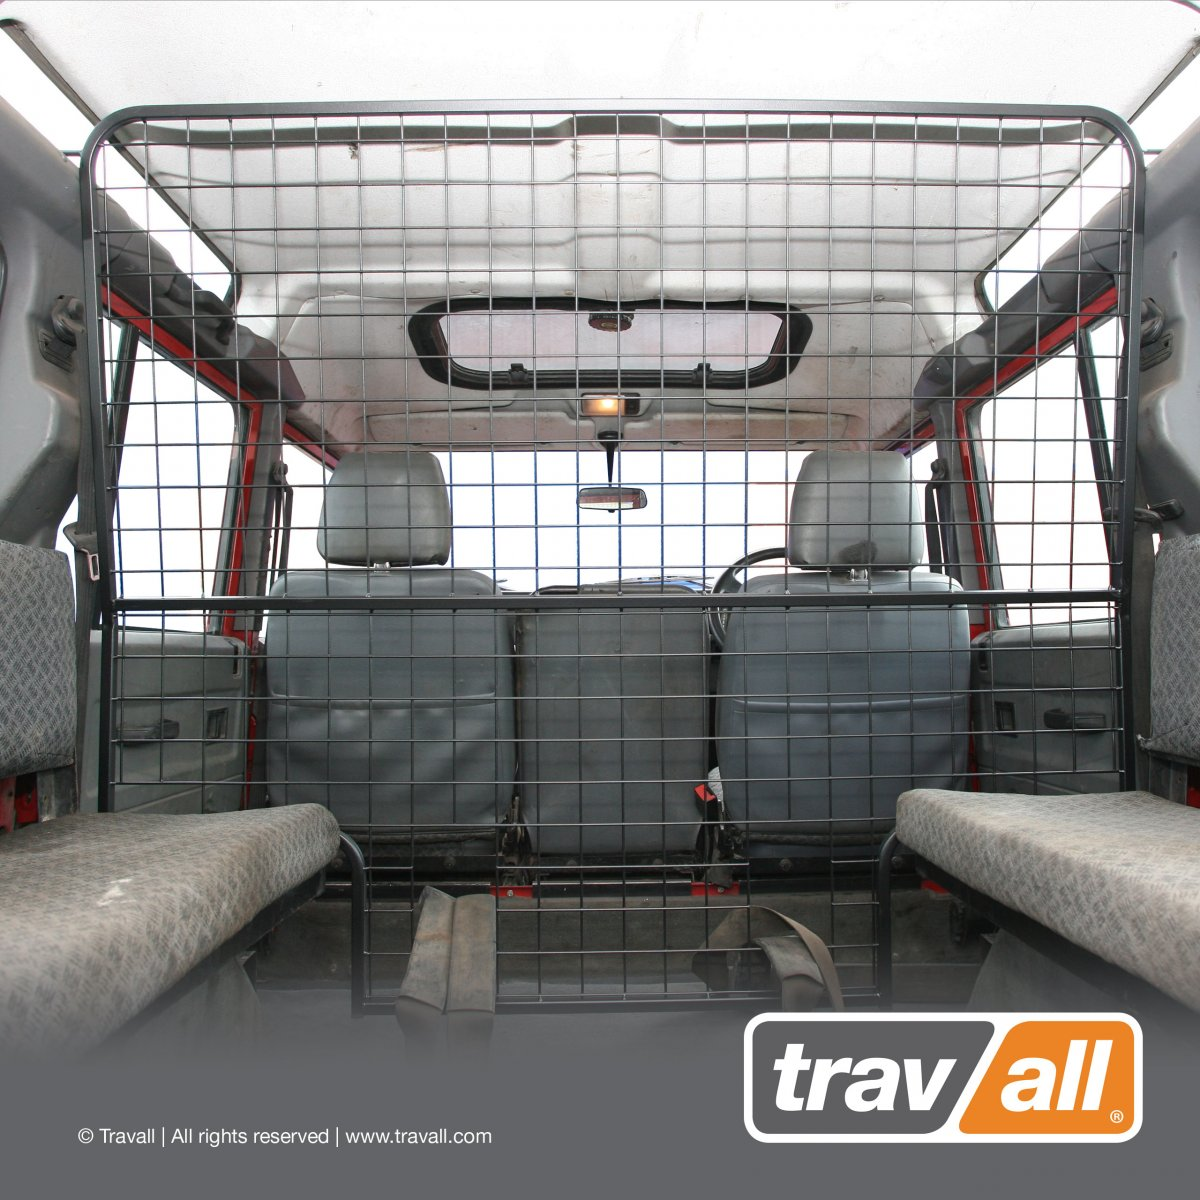 Travall® Guard for Land Rover 110 Station Wagon County 1983 - 1990